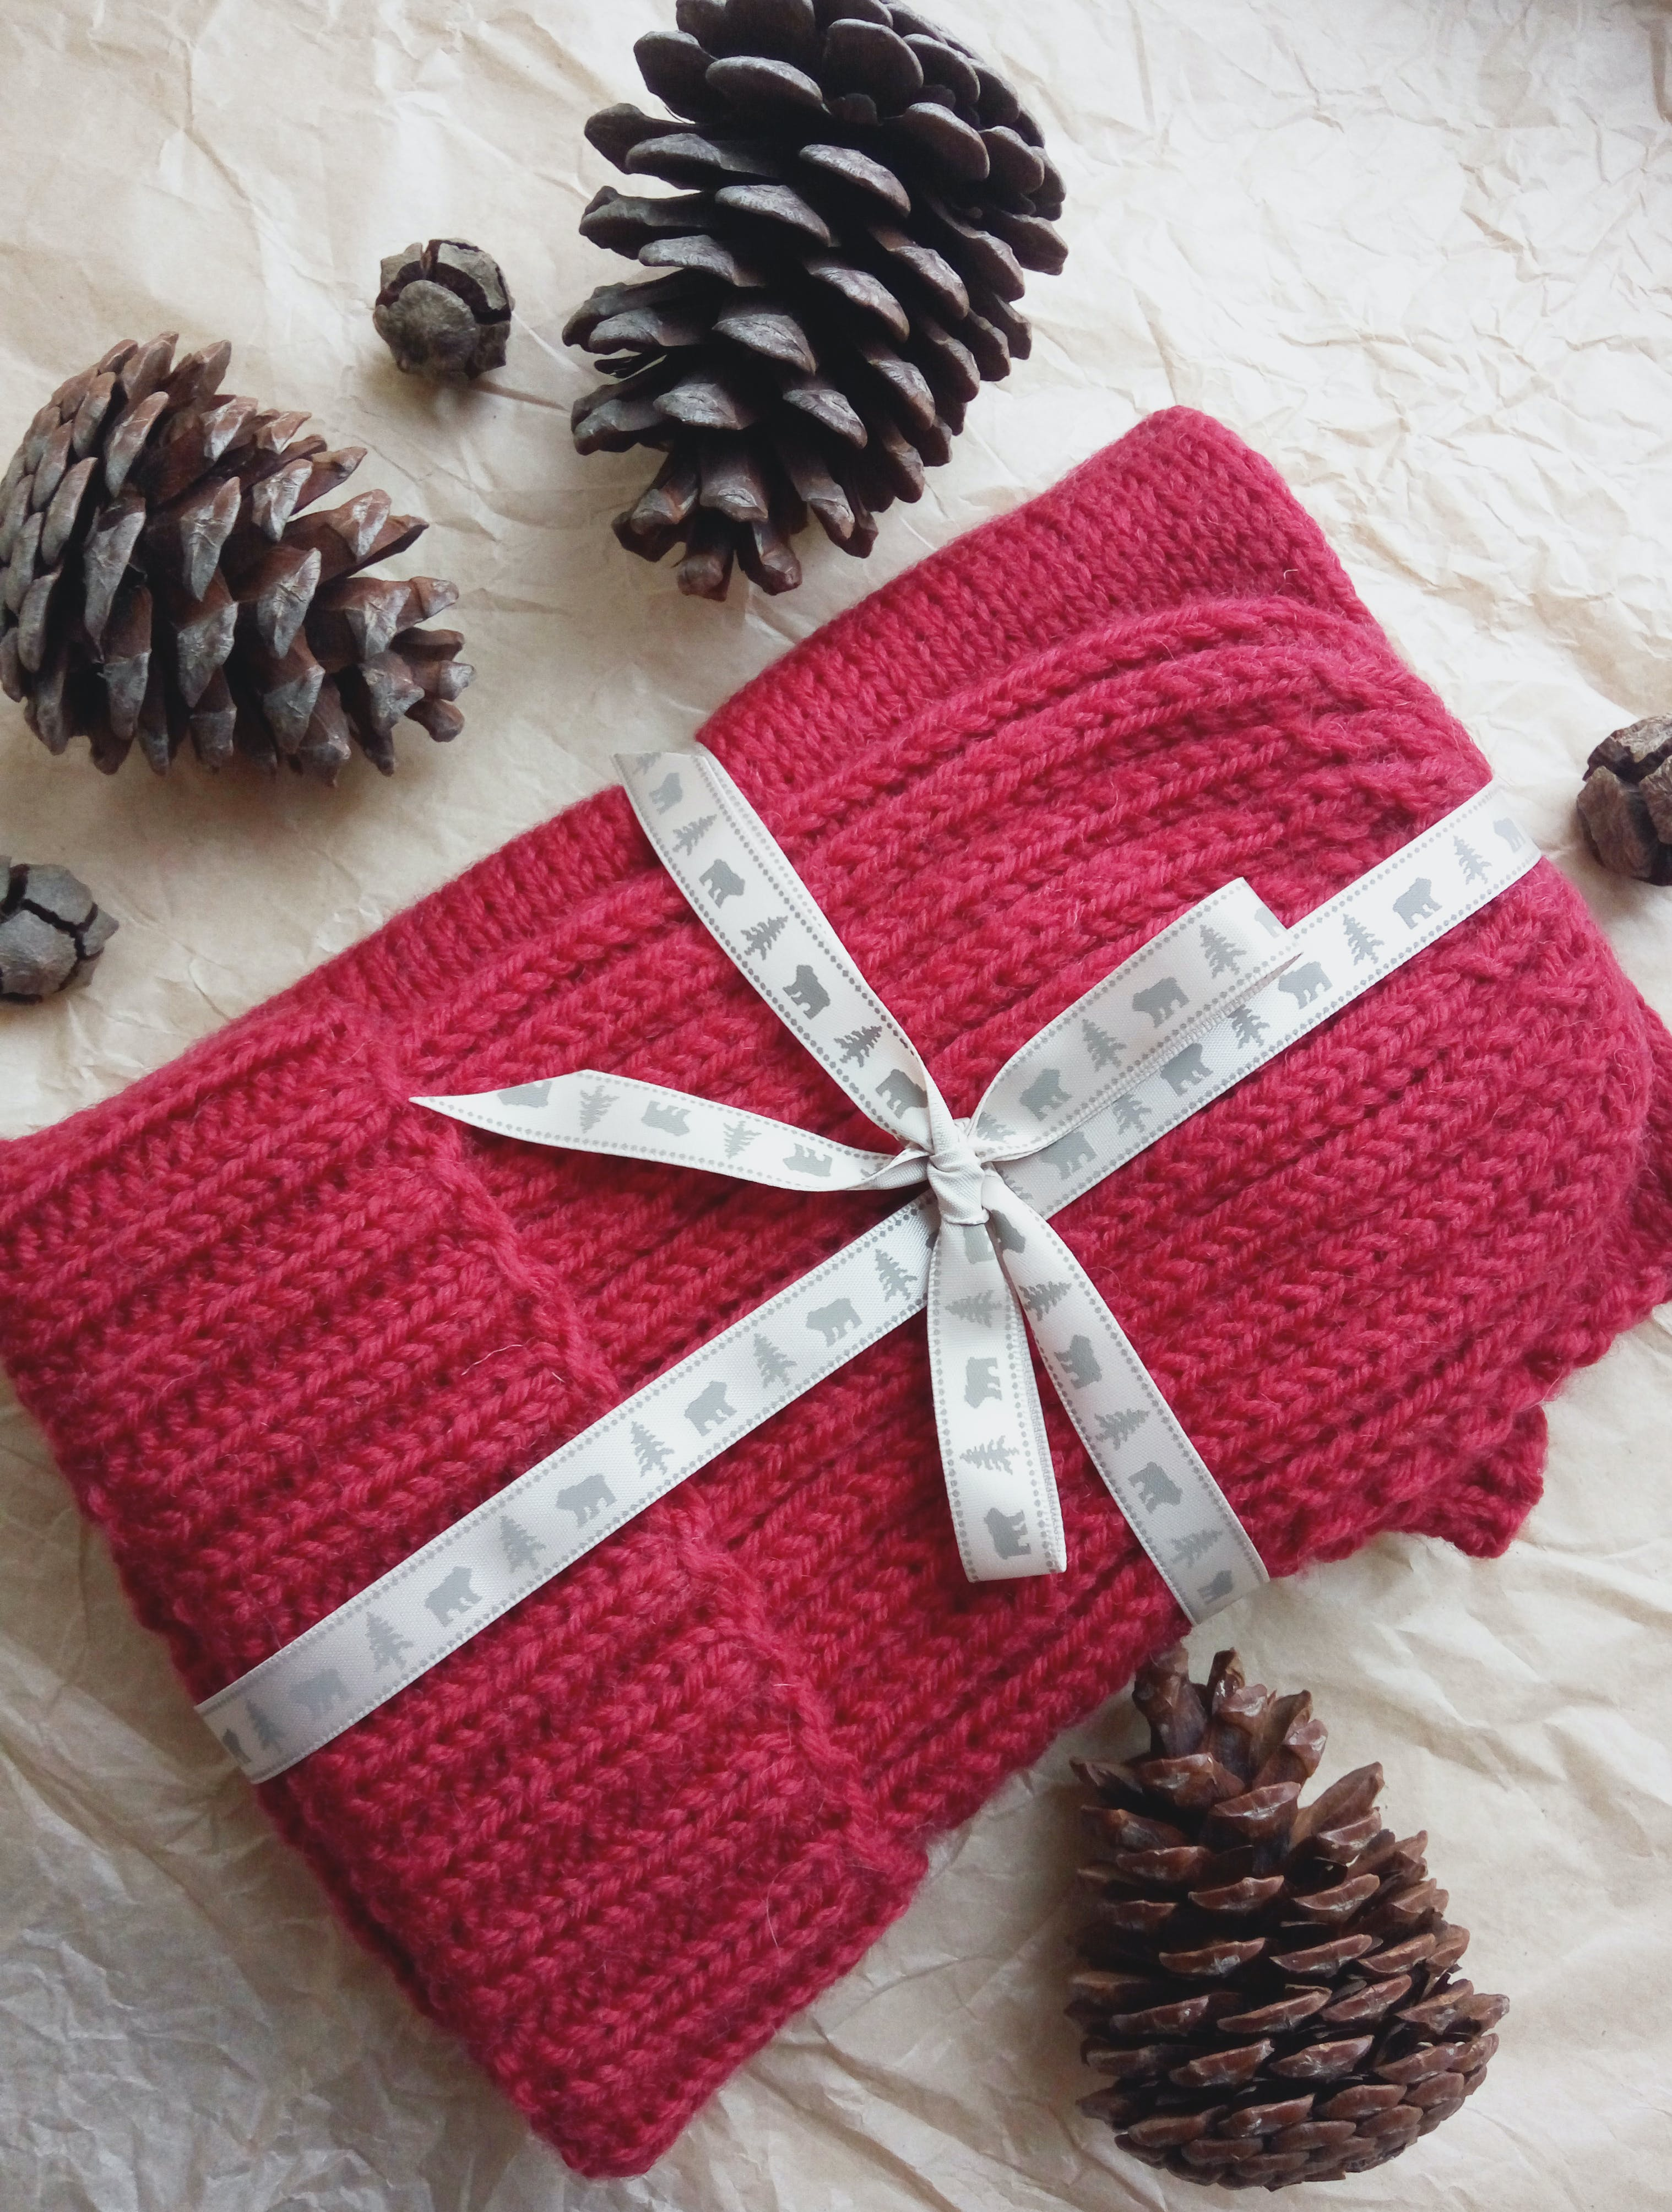 Red Knitted Textile And Three Black Pine Cones